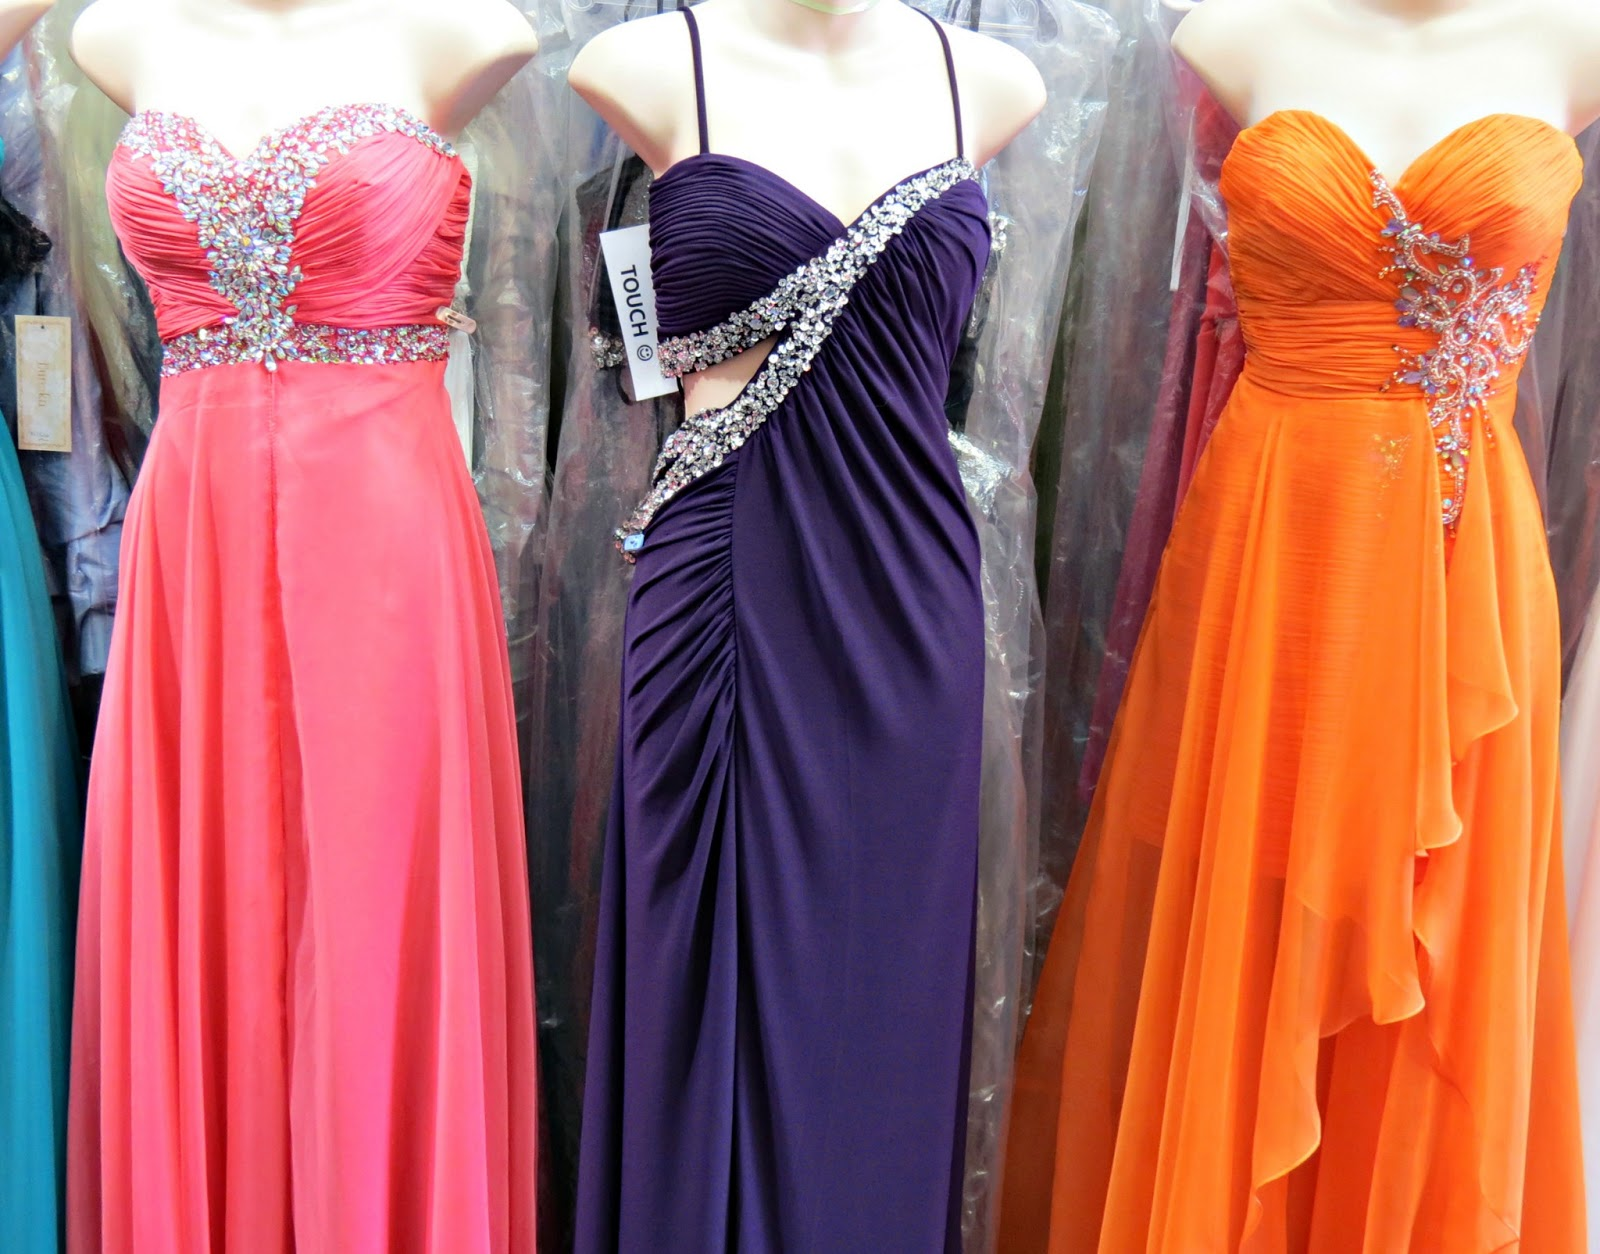 ... for a prom dress or special occasion dress to check out this store